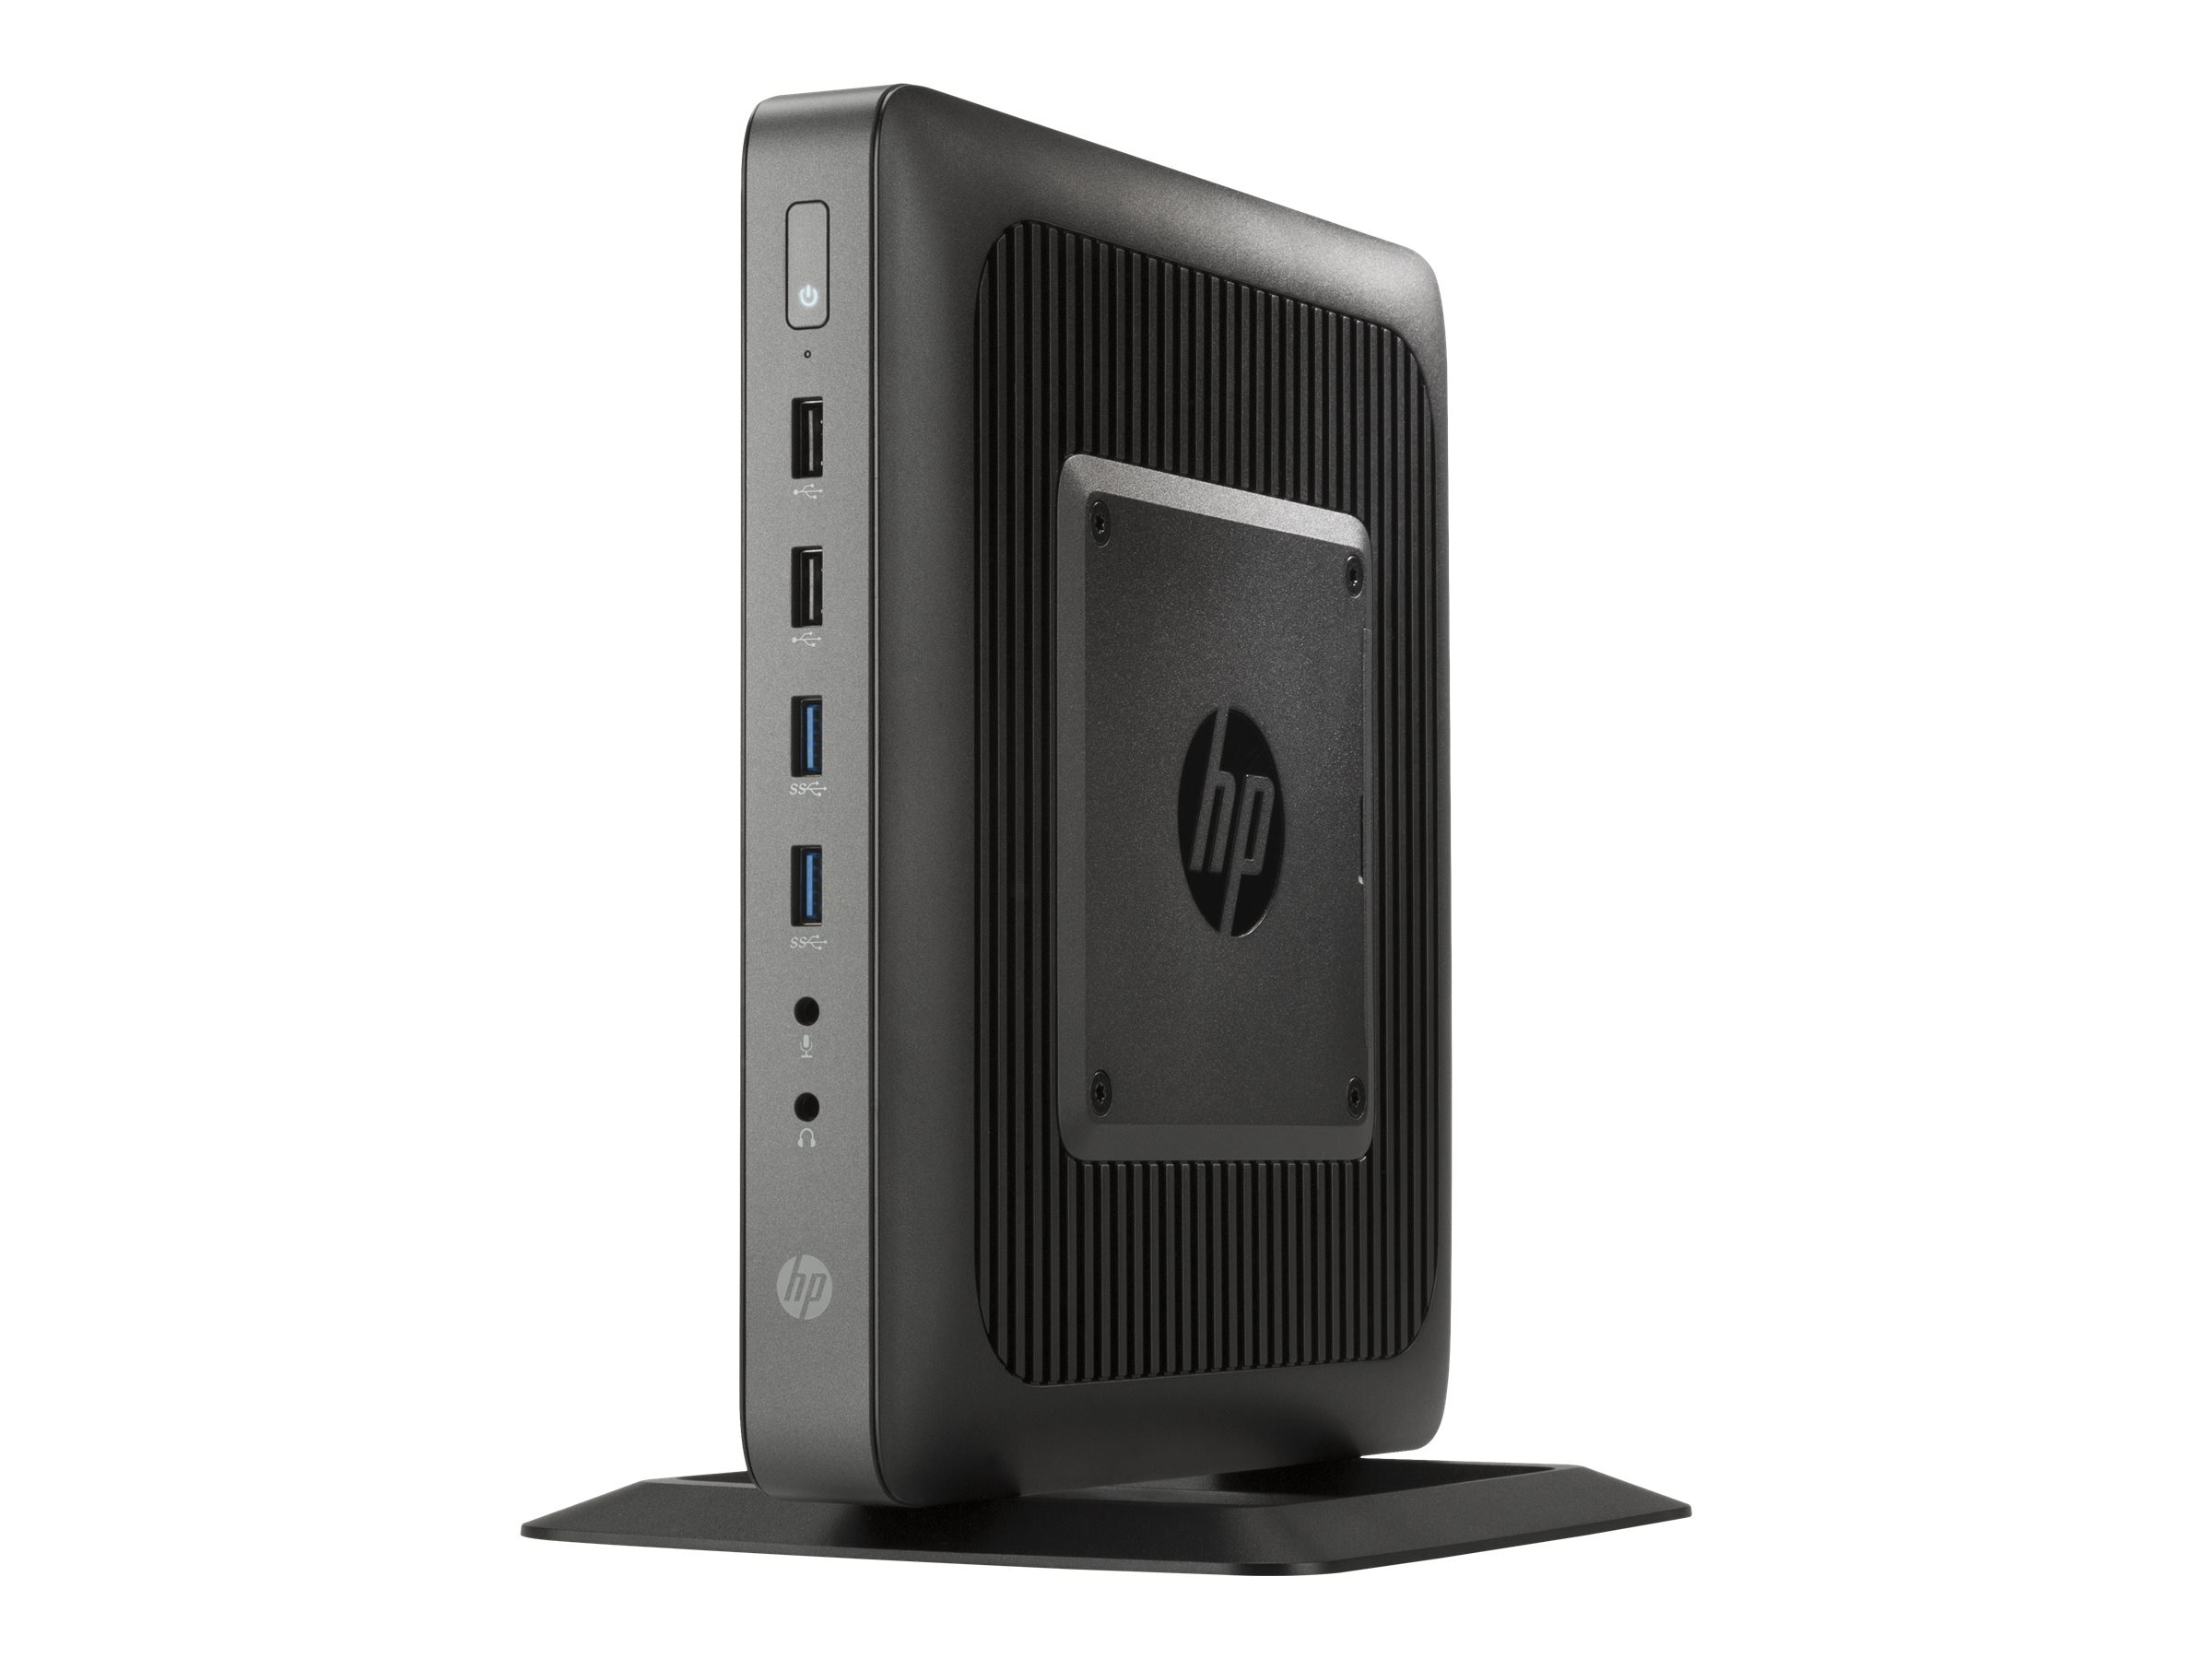 HP t620 Flexible Thin Client AMD QC GX-415GA 1.5 GHz 8GB 32GB Flash HD8330E ac BT W10 IoT